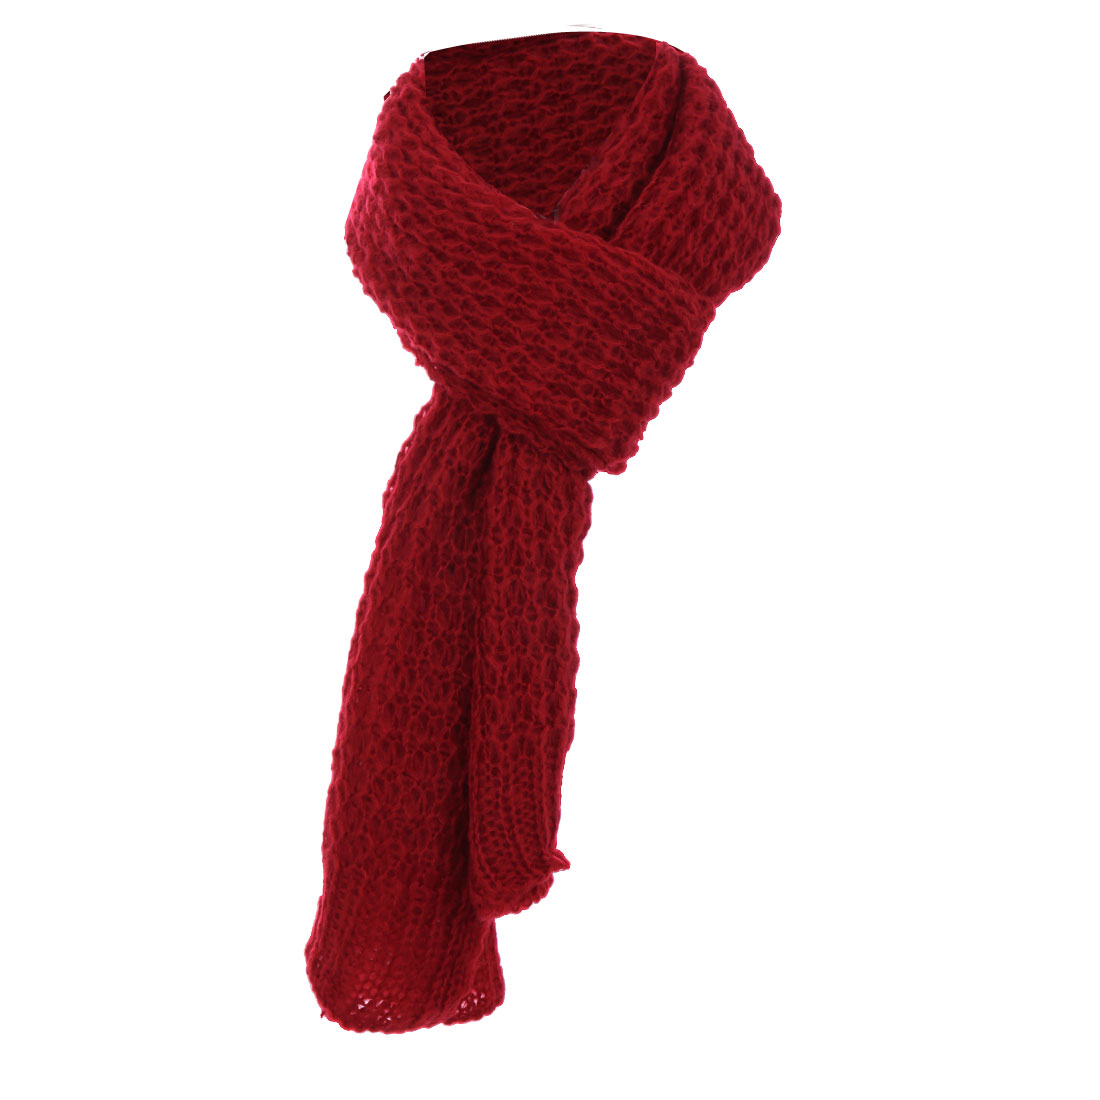 Fashion Scarves  Mens Fashion Winter Warm Knitted Soft Red Scarf Men's Knitted Winter Scarves